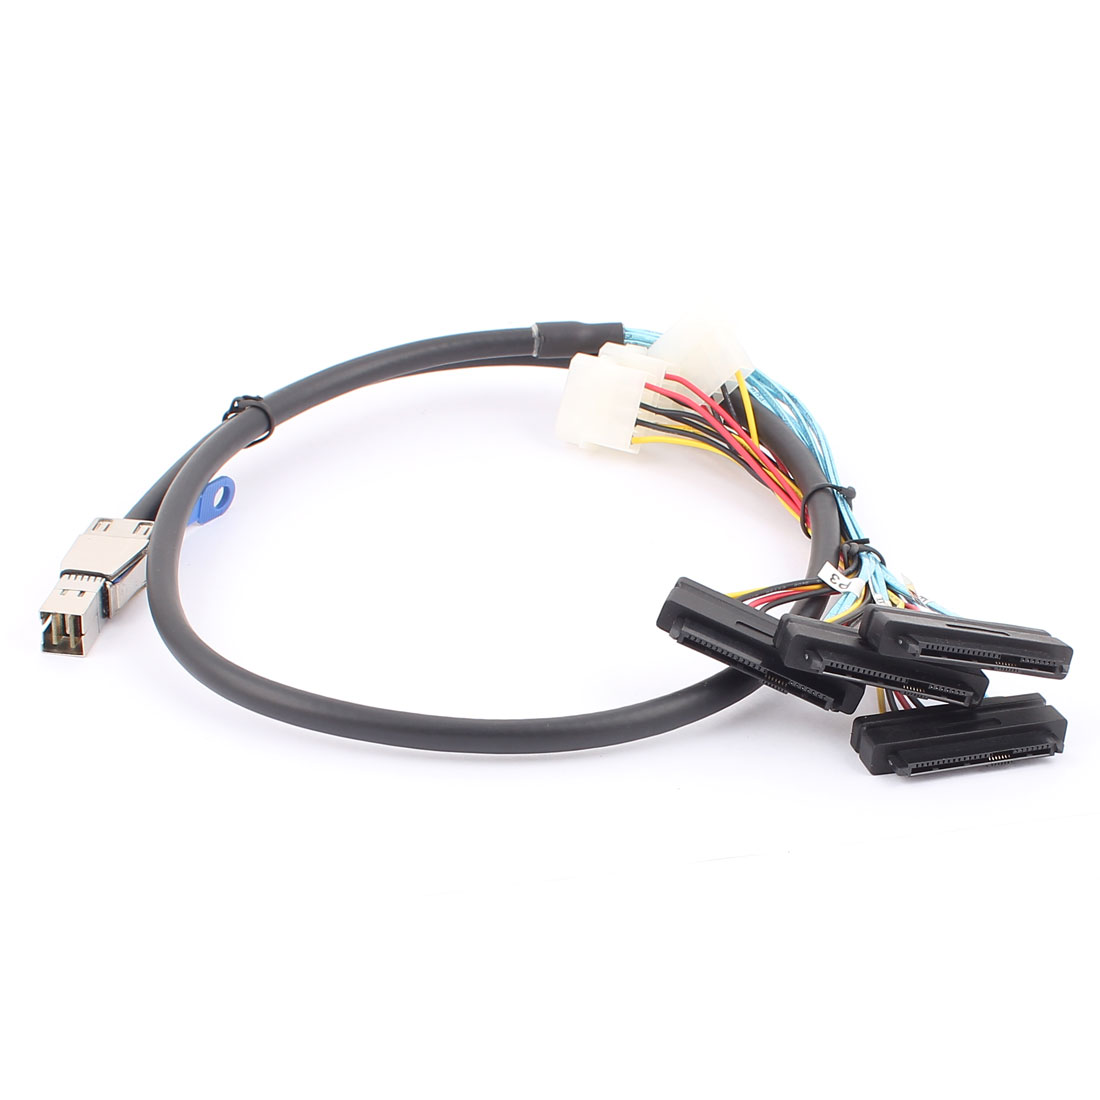 SAS HD 36 Pin SFF-8644 to SFF-8482 29Pin + 4Pin Data Cable Cord 1M 3.3ft